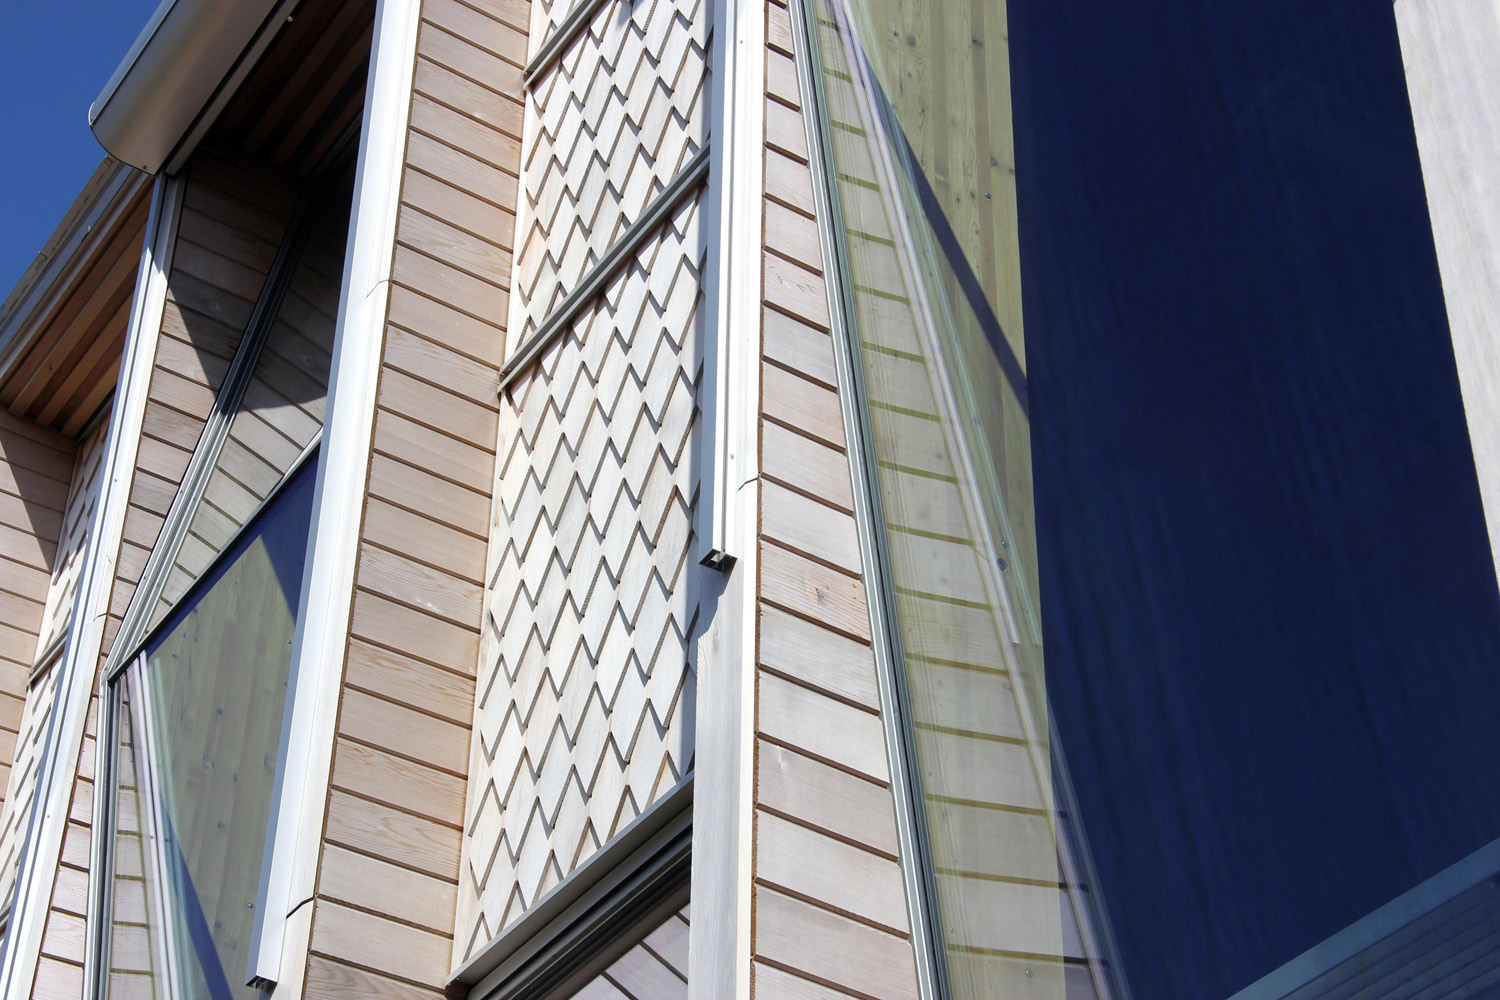 facade detail showing cedar clad timber window system